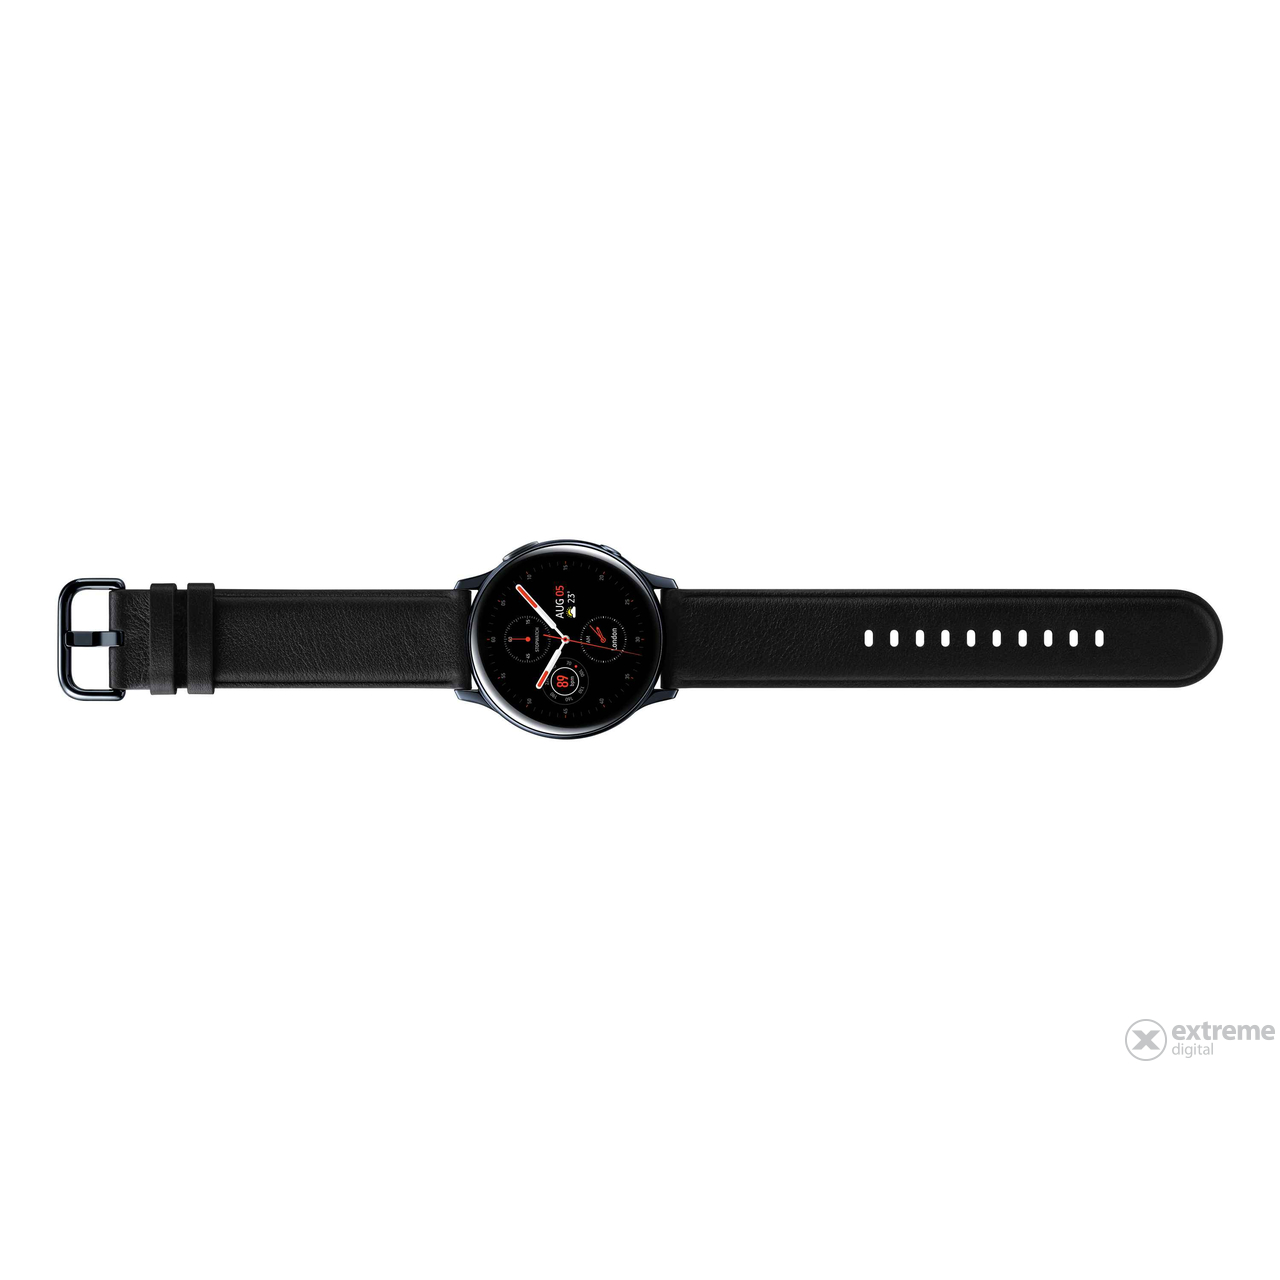 Samsung Galaxy Watch Active 2 okosóra (40mm, Stainless Steel), fekete - [Bontott]